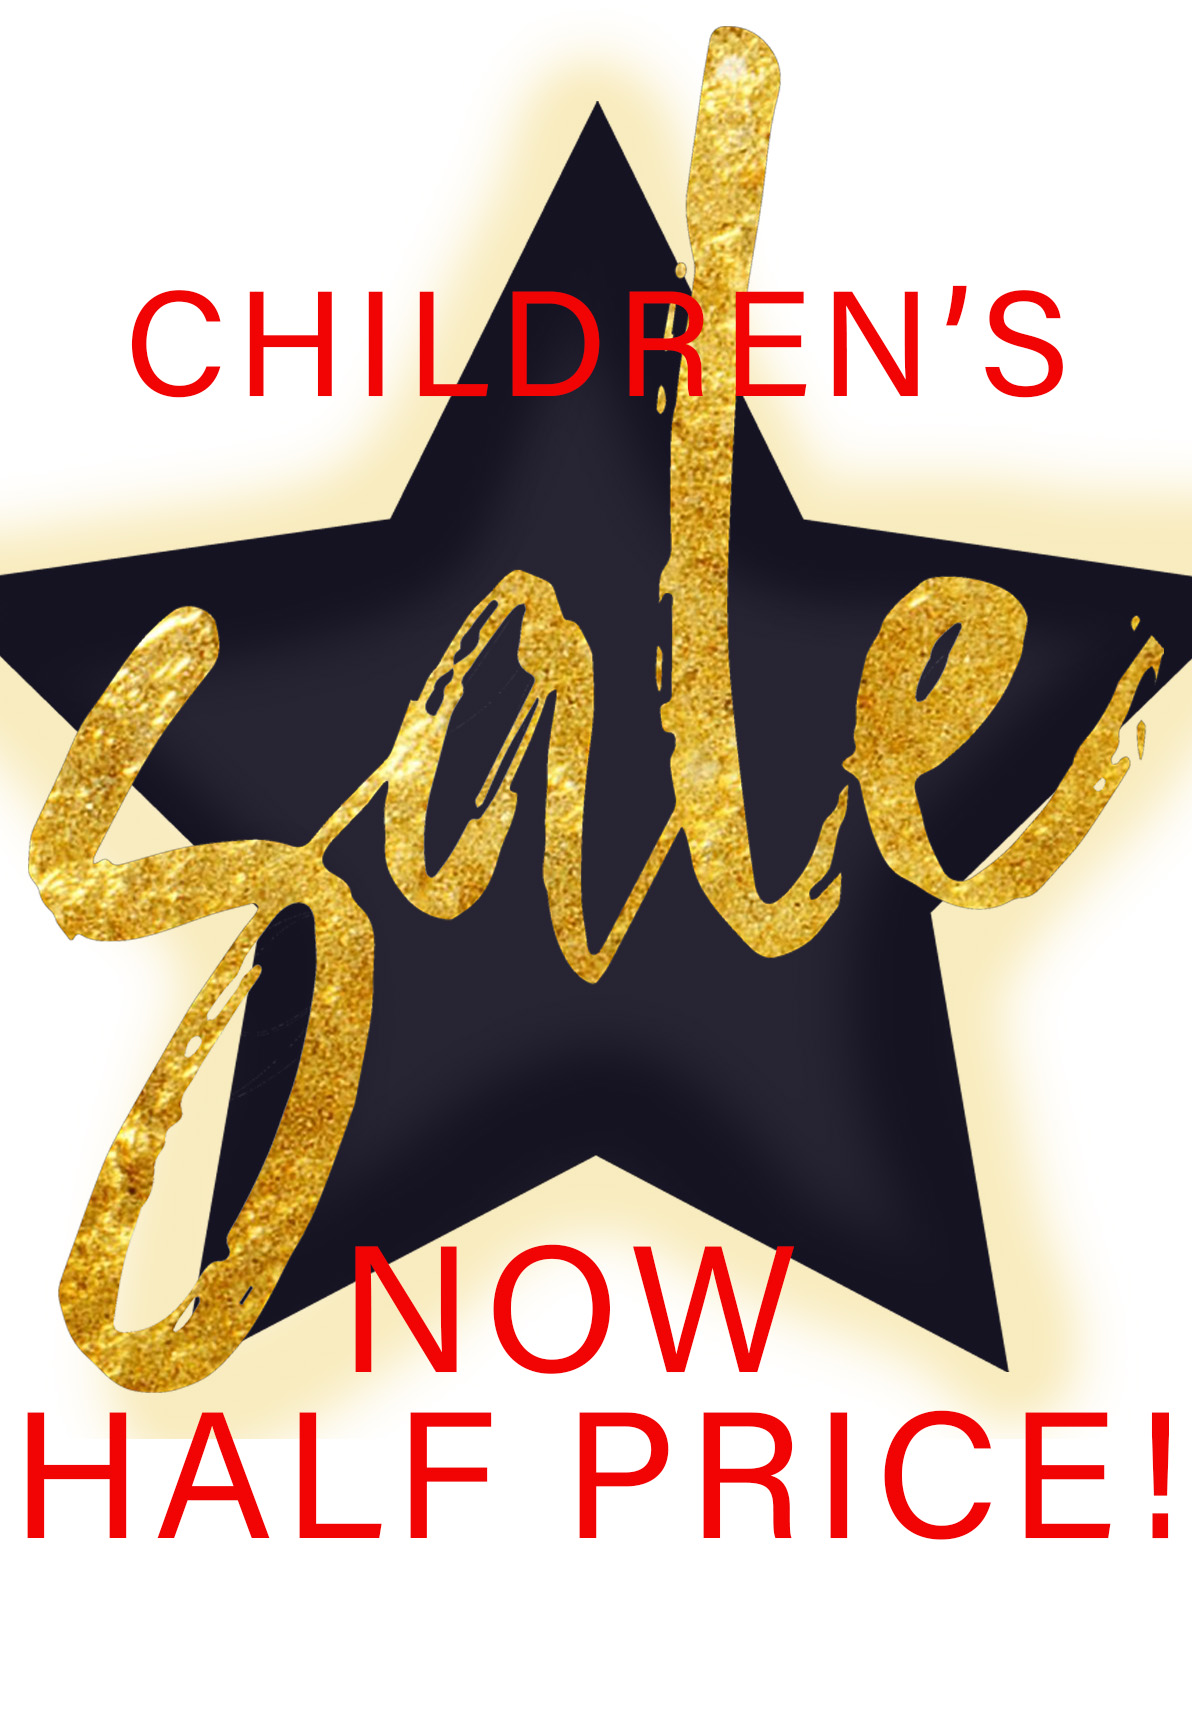 CHILDRENS SALE! NOW HALF PRICE!!